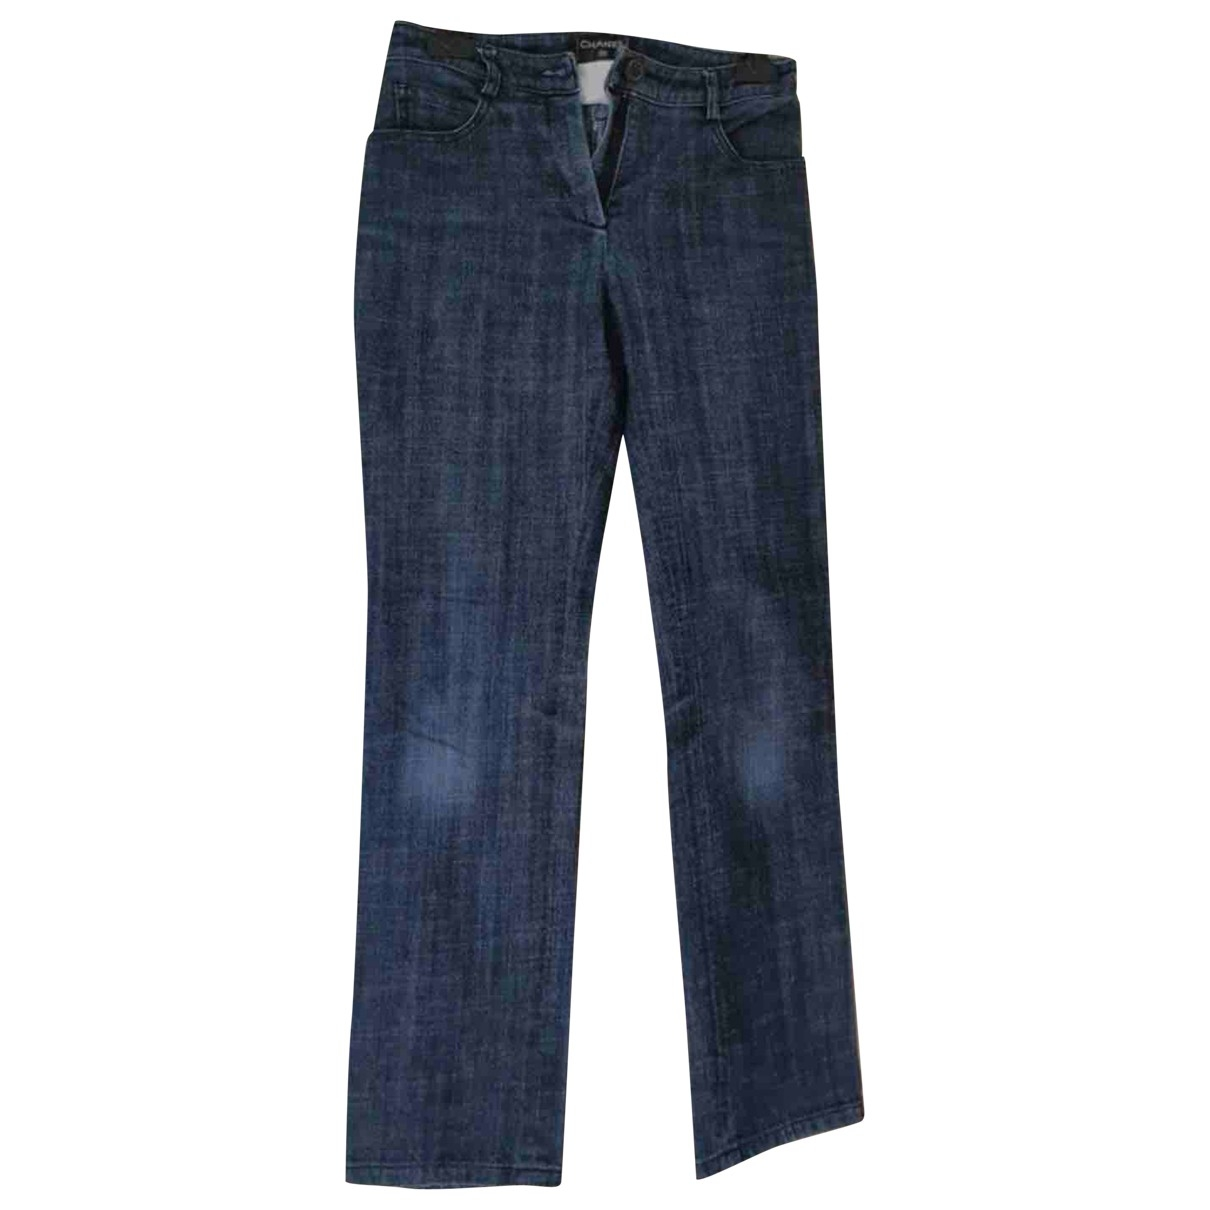 Chanel \N Blue Cotton Jeans for Women 34 FR